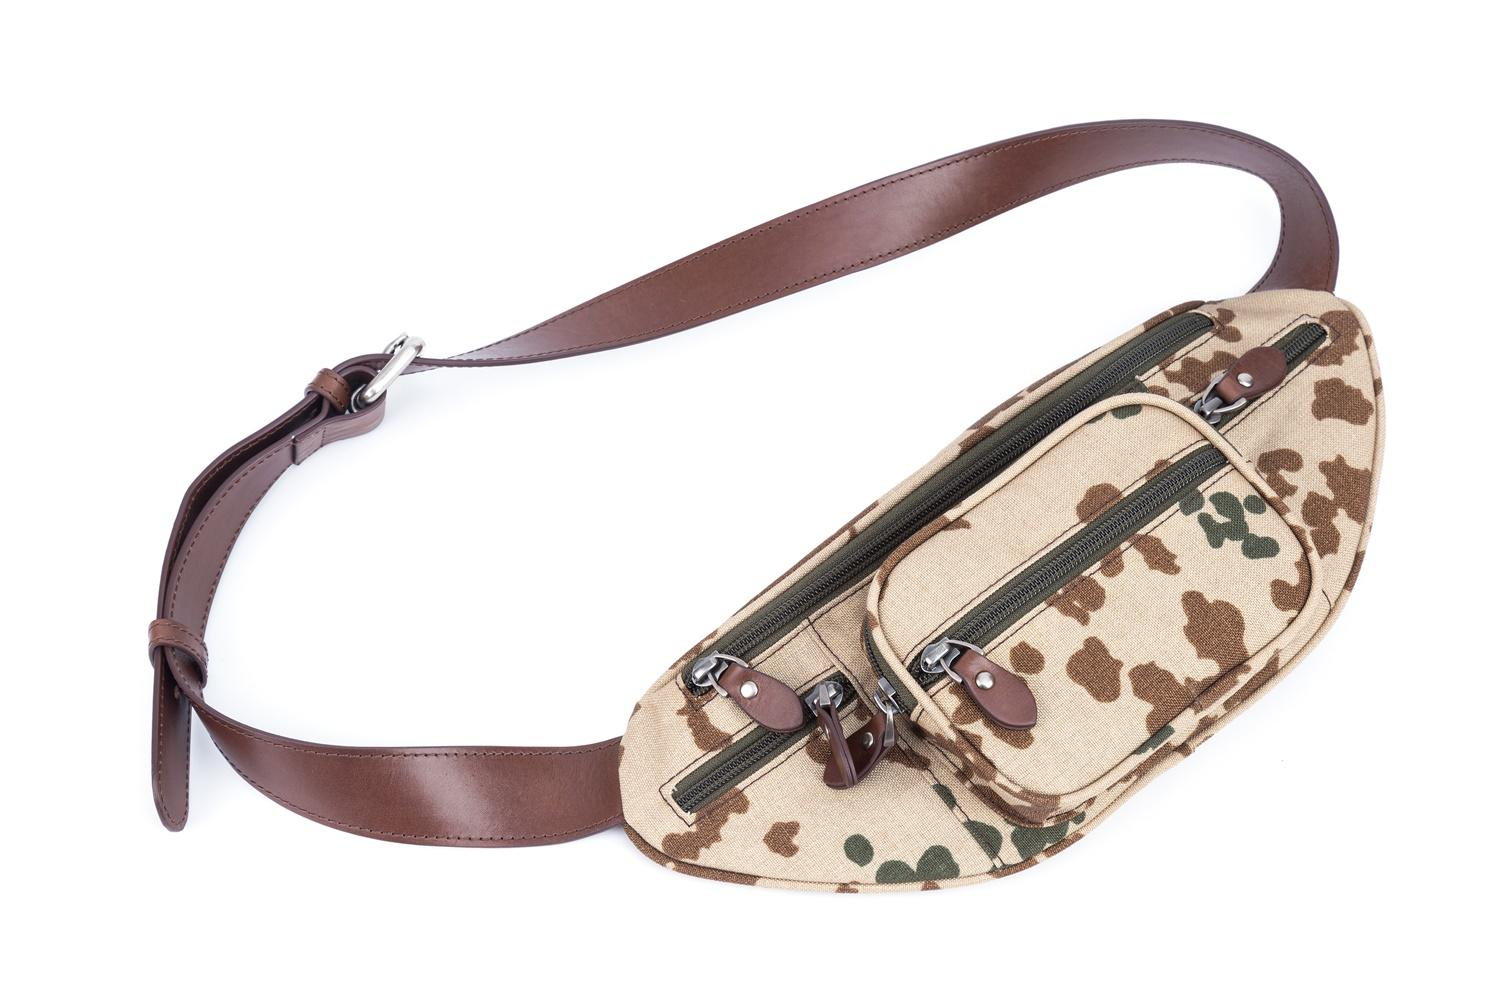 GF bags-Body Bag Genuine Leather Wax Leather Strap Camouflage Nylon Pocket-gaofeng Bags-2